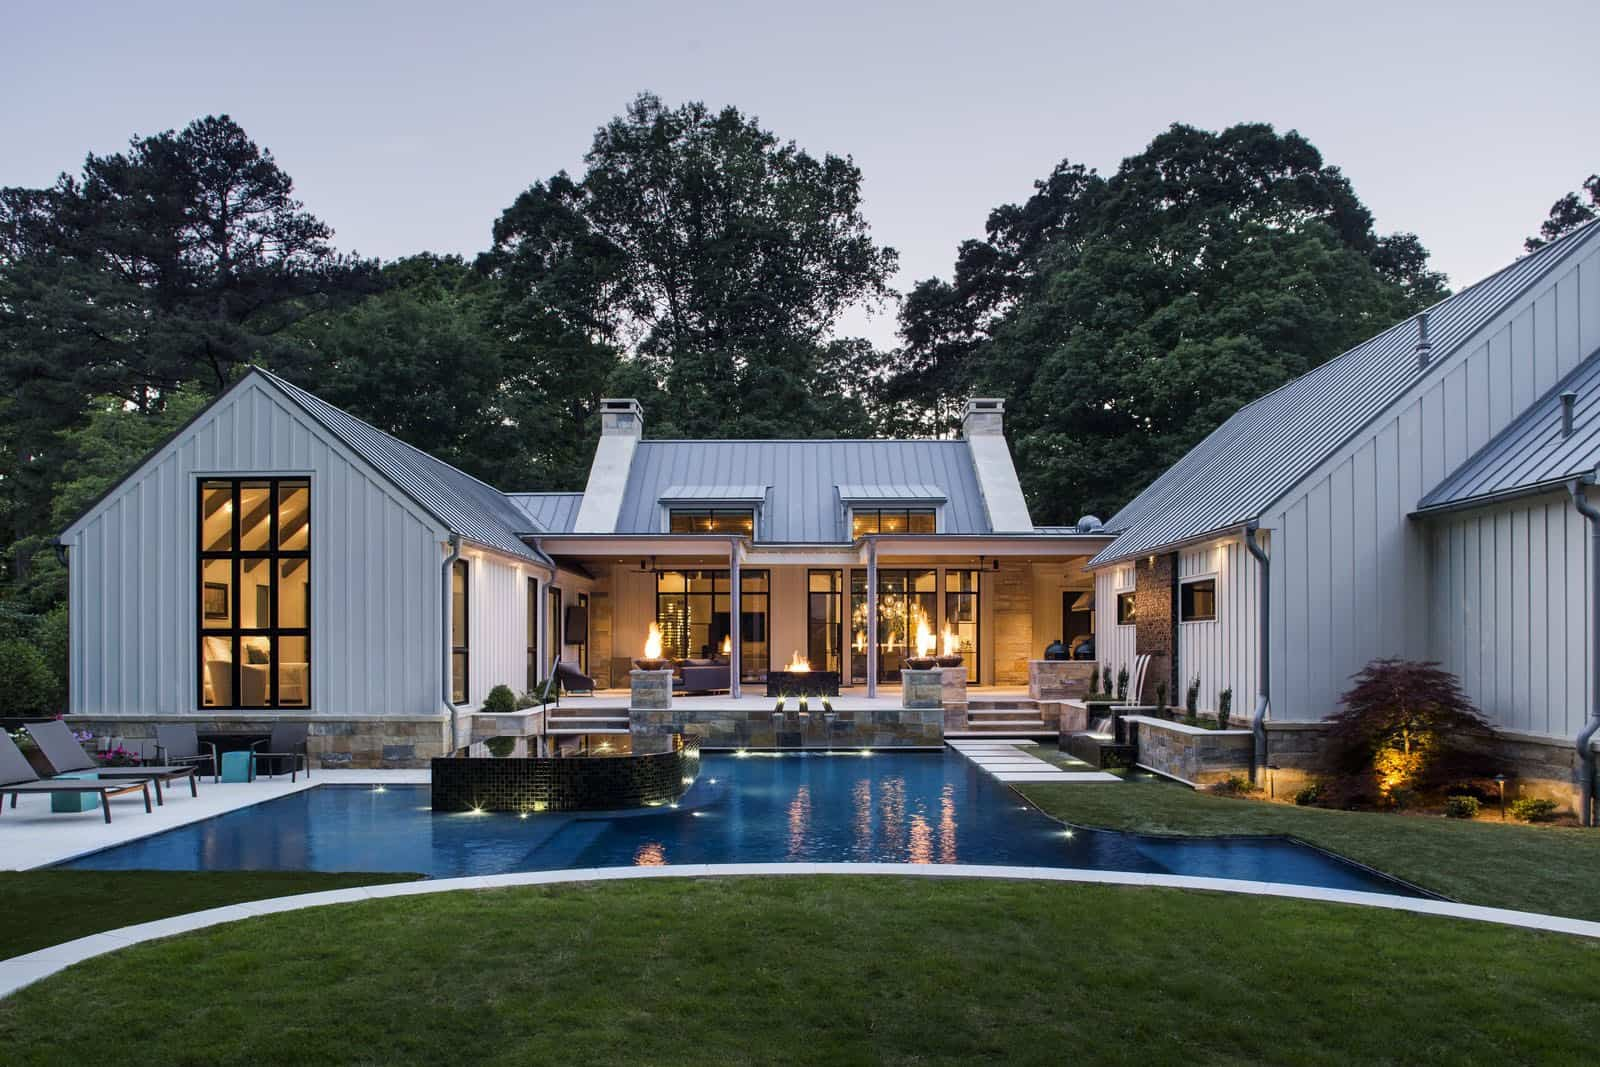 modern-farmhouse-exterior-and-swimming-pool